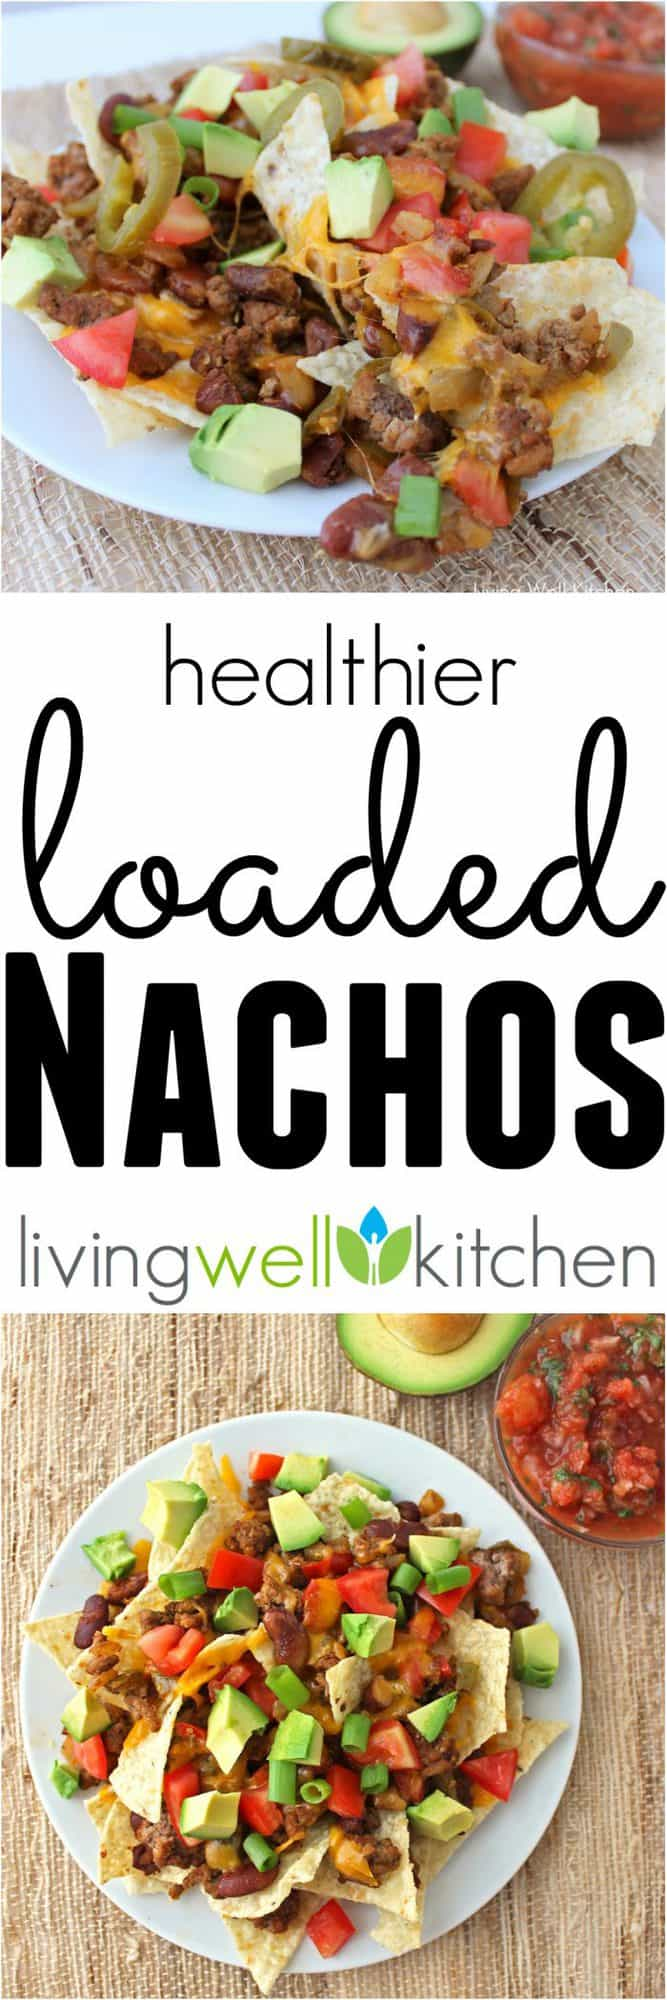 Fully loaded (and a little healthier) nachos from @memeinge with a double layer of chips covered in beef, beans, peppers, onions, cheese, avocado, tomatoes & jalapeños. Great for a gluten free snack or appetizer recipe. Perfect for gameday